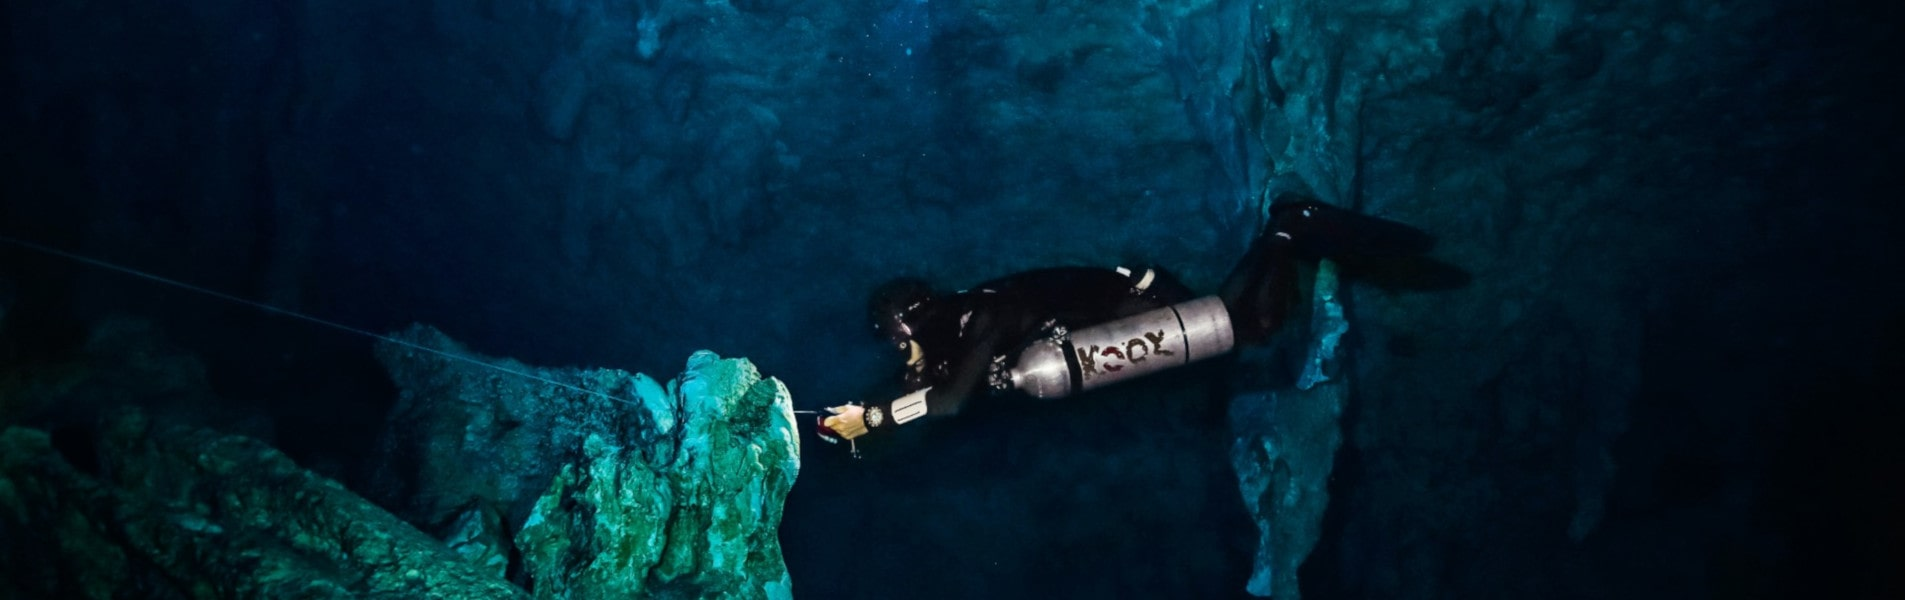 Cave Diving Safety Tips